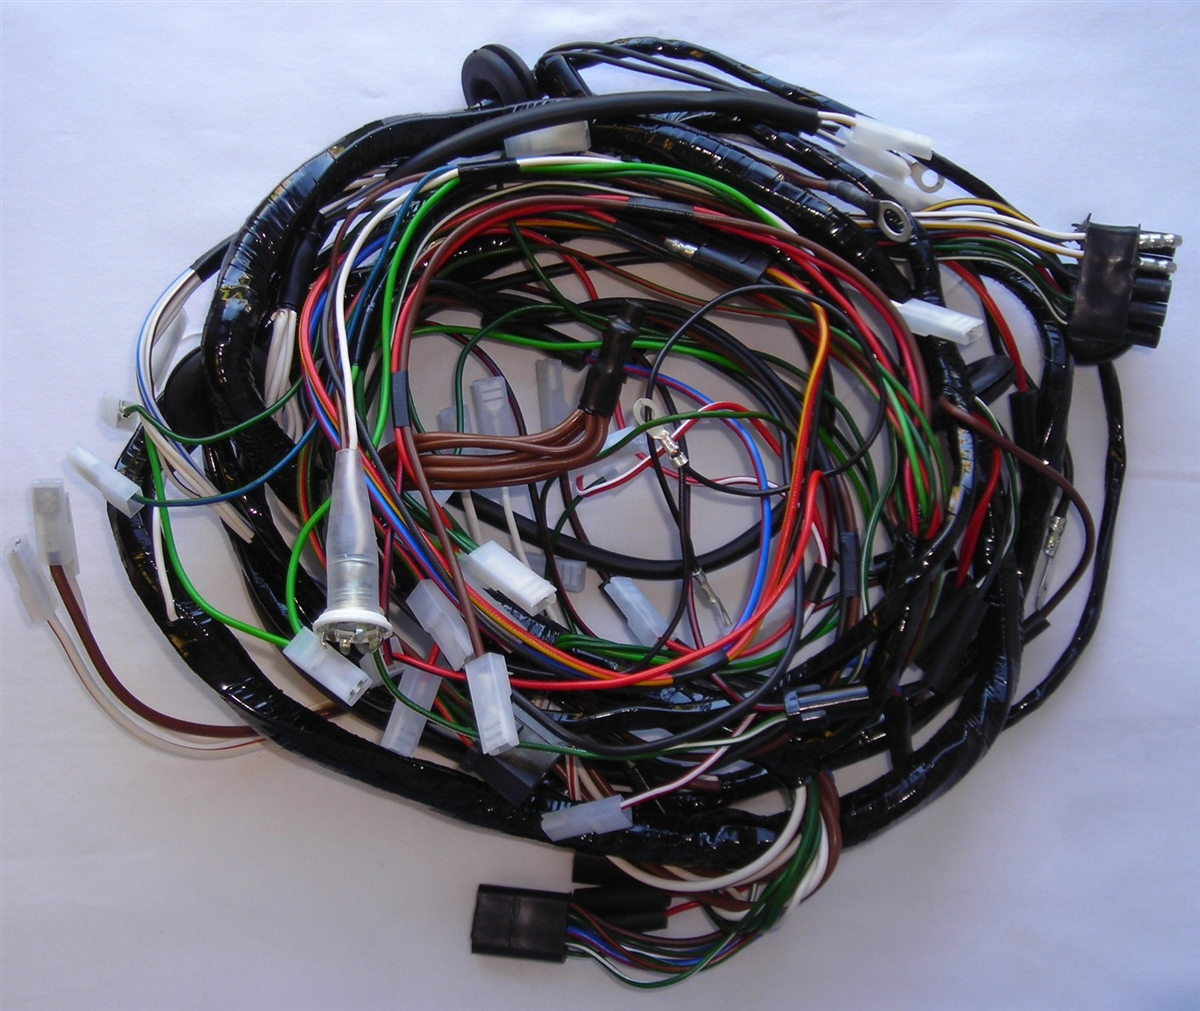 land rover series 3 main wiring harness land rover defender wiring harness rover wiring harness [ 1200 x 1011 Pixel ]